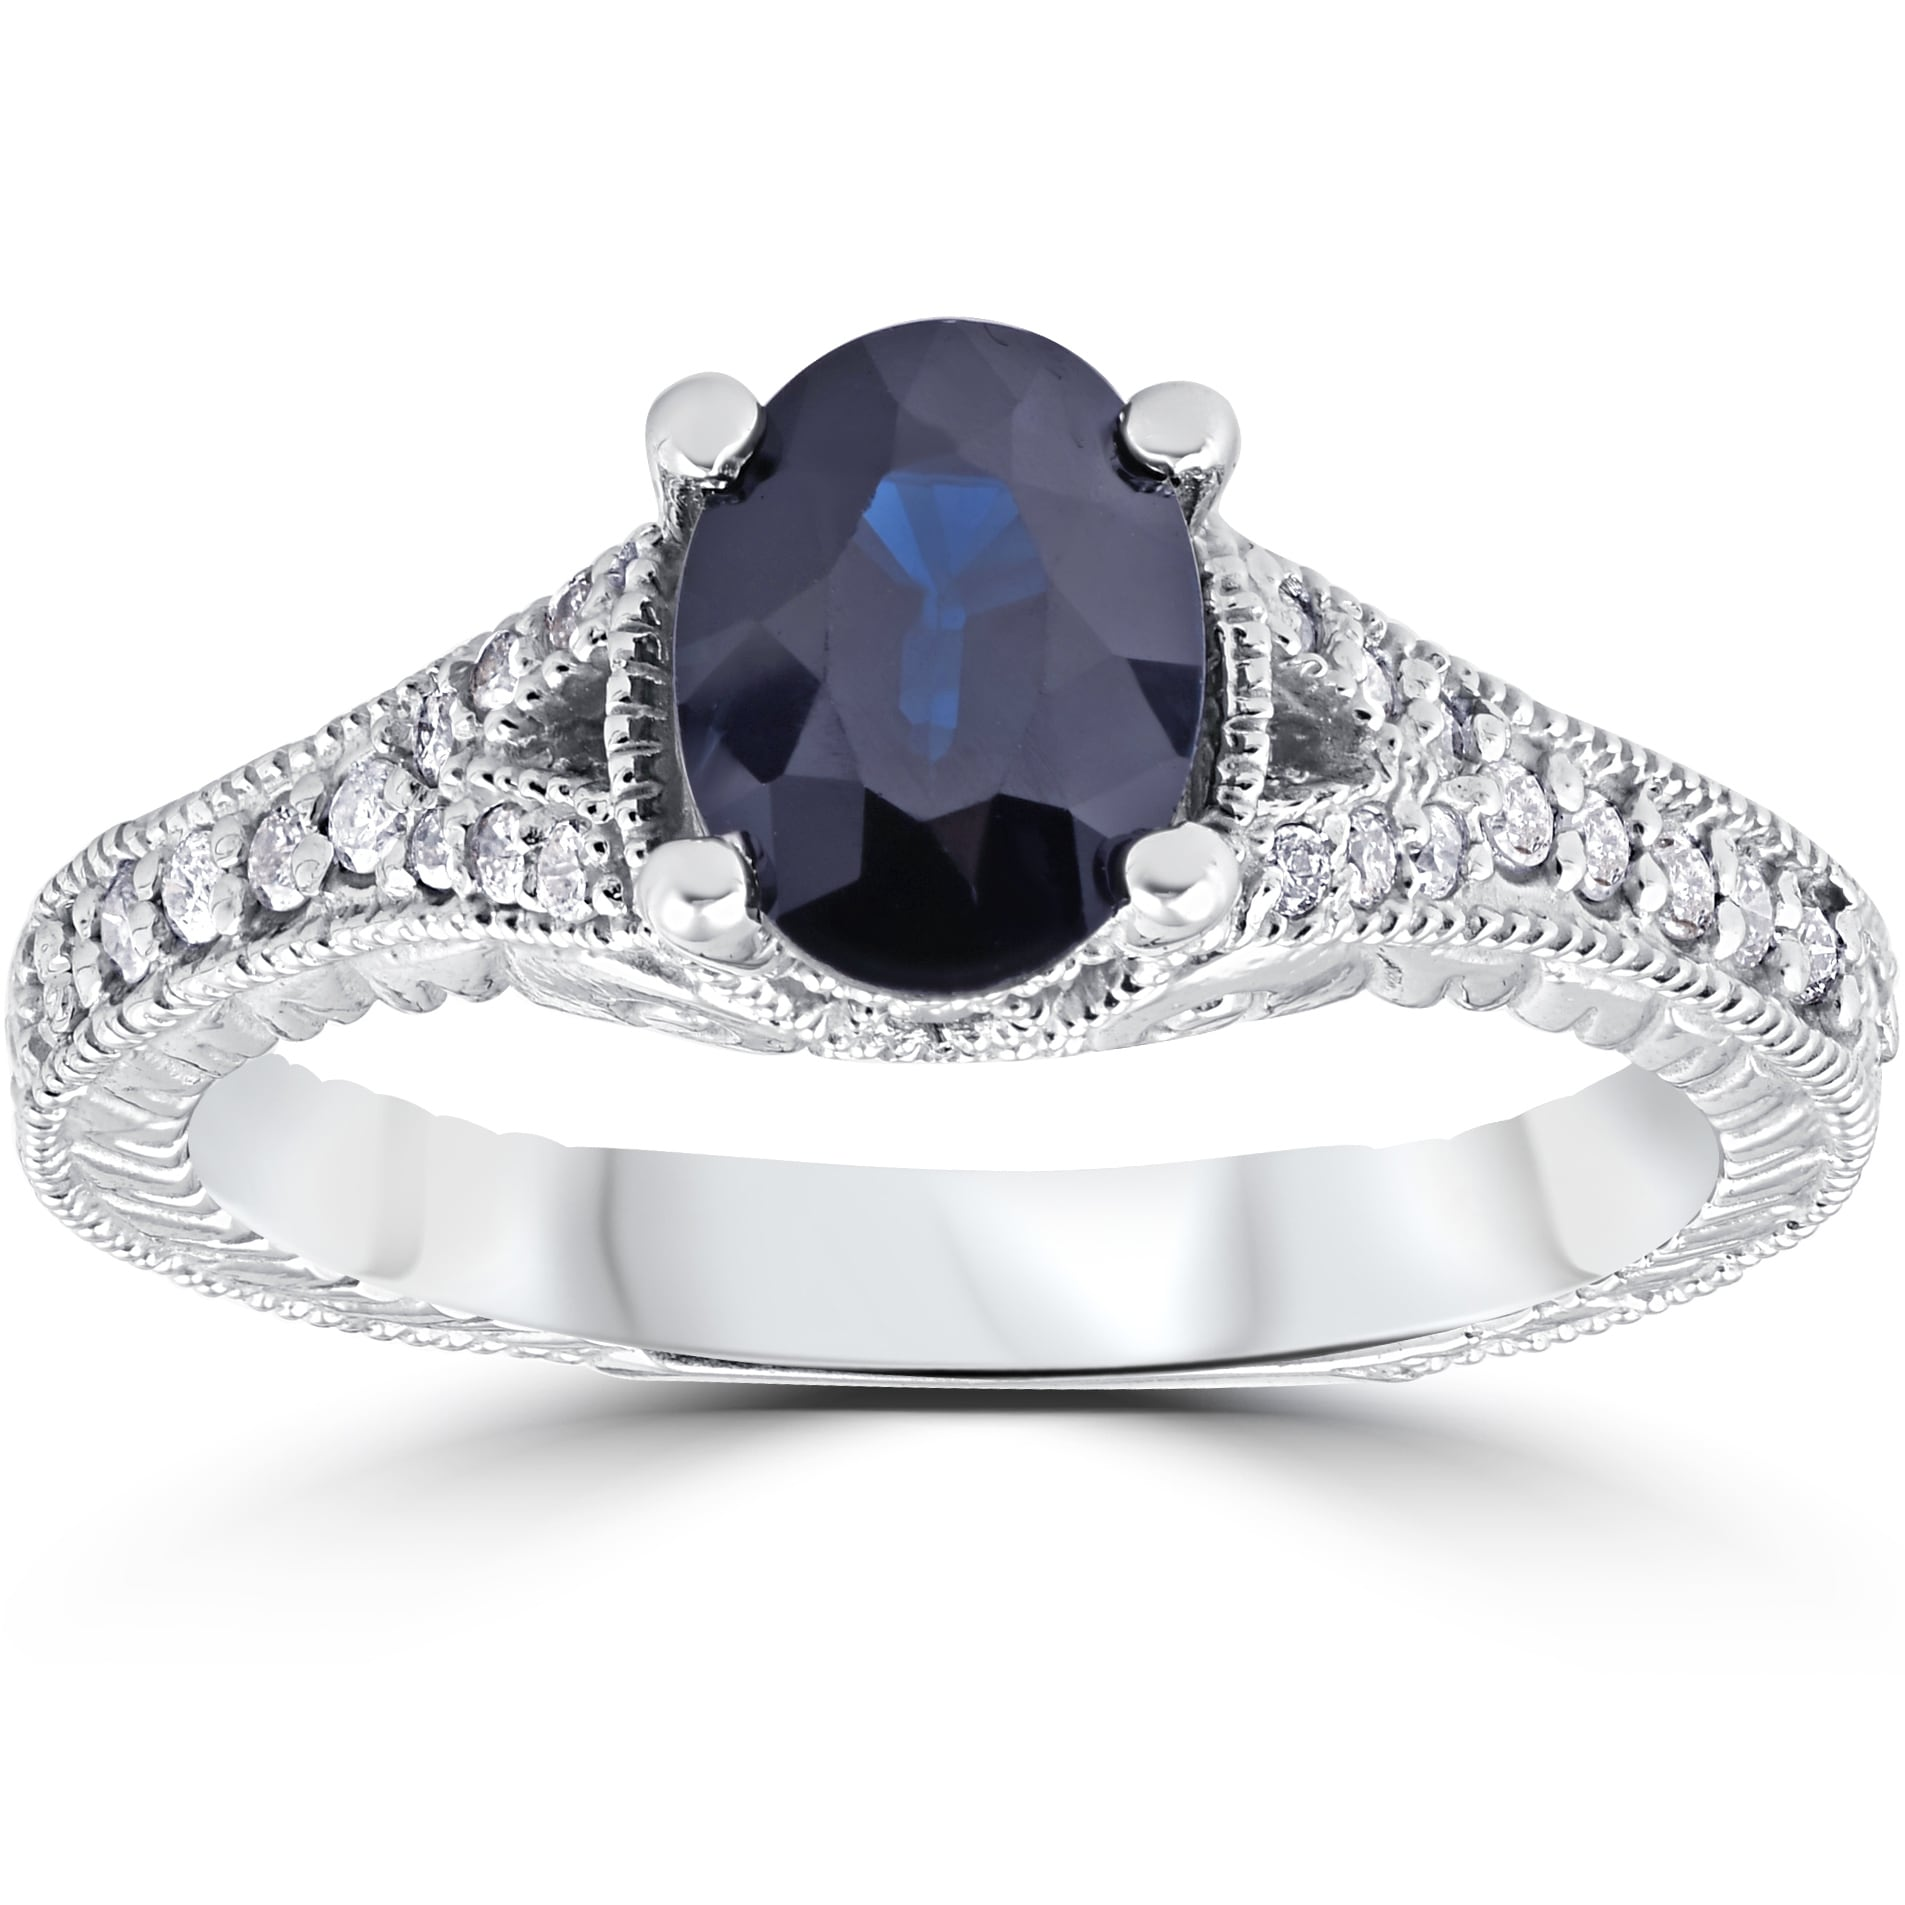 s sapphire high of feedback positive solid we men sliver is blue before maintain to square you us very standards ring satisfaction created jewelrypalace and customer sterling strive for engagement contact important product excellence pls